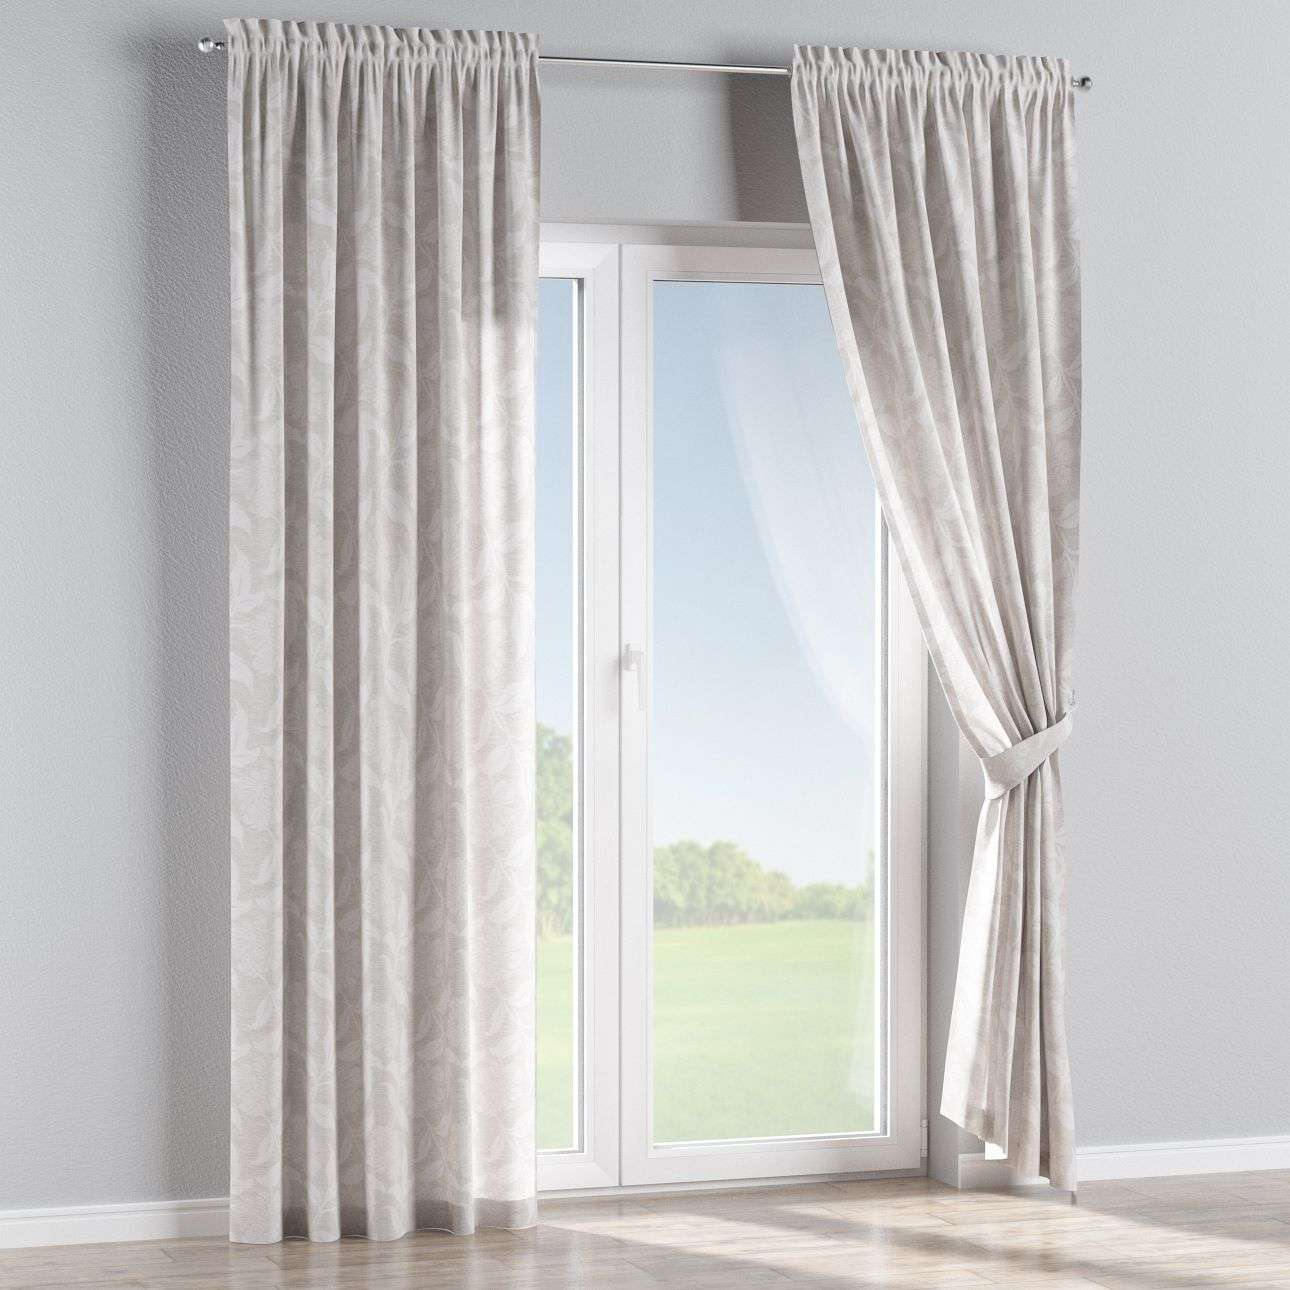 Slot and frill curtains in collection Venice, fabric: 140-51